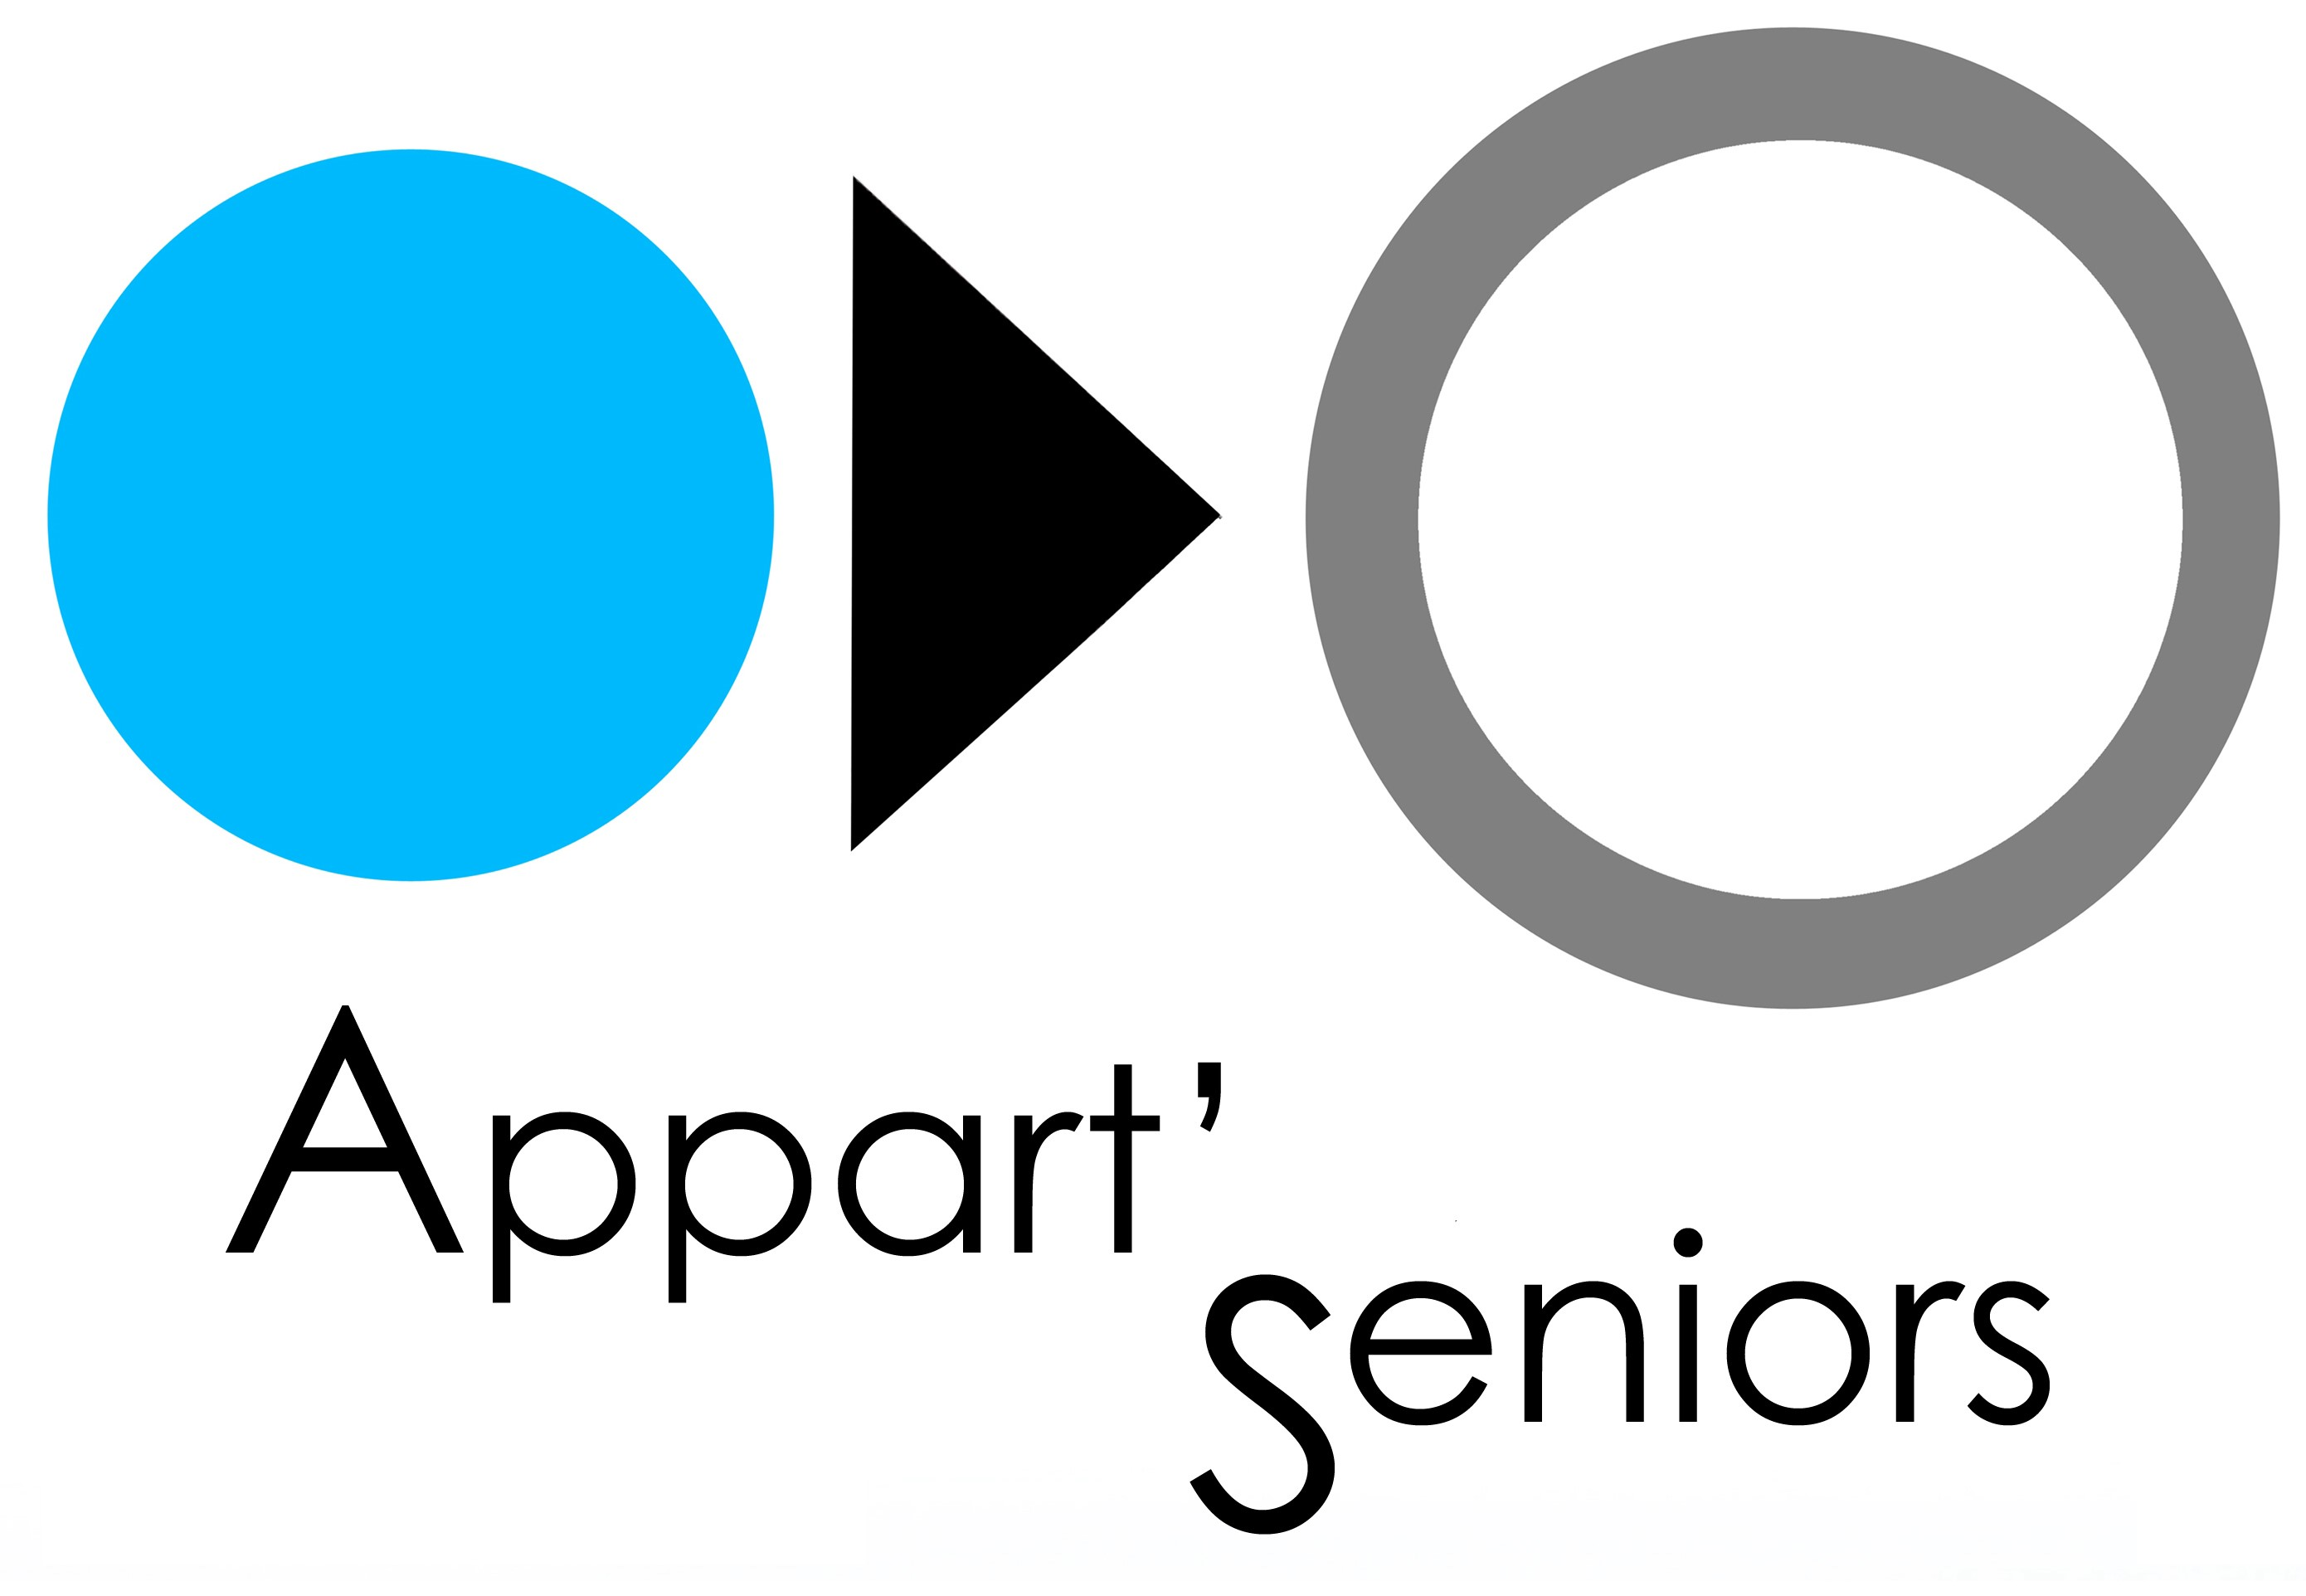 Appartseniors